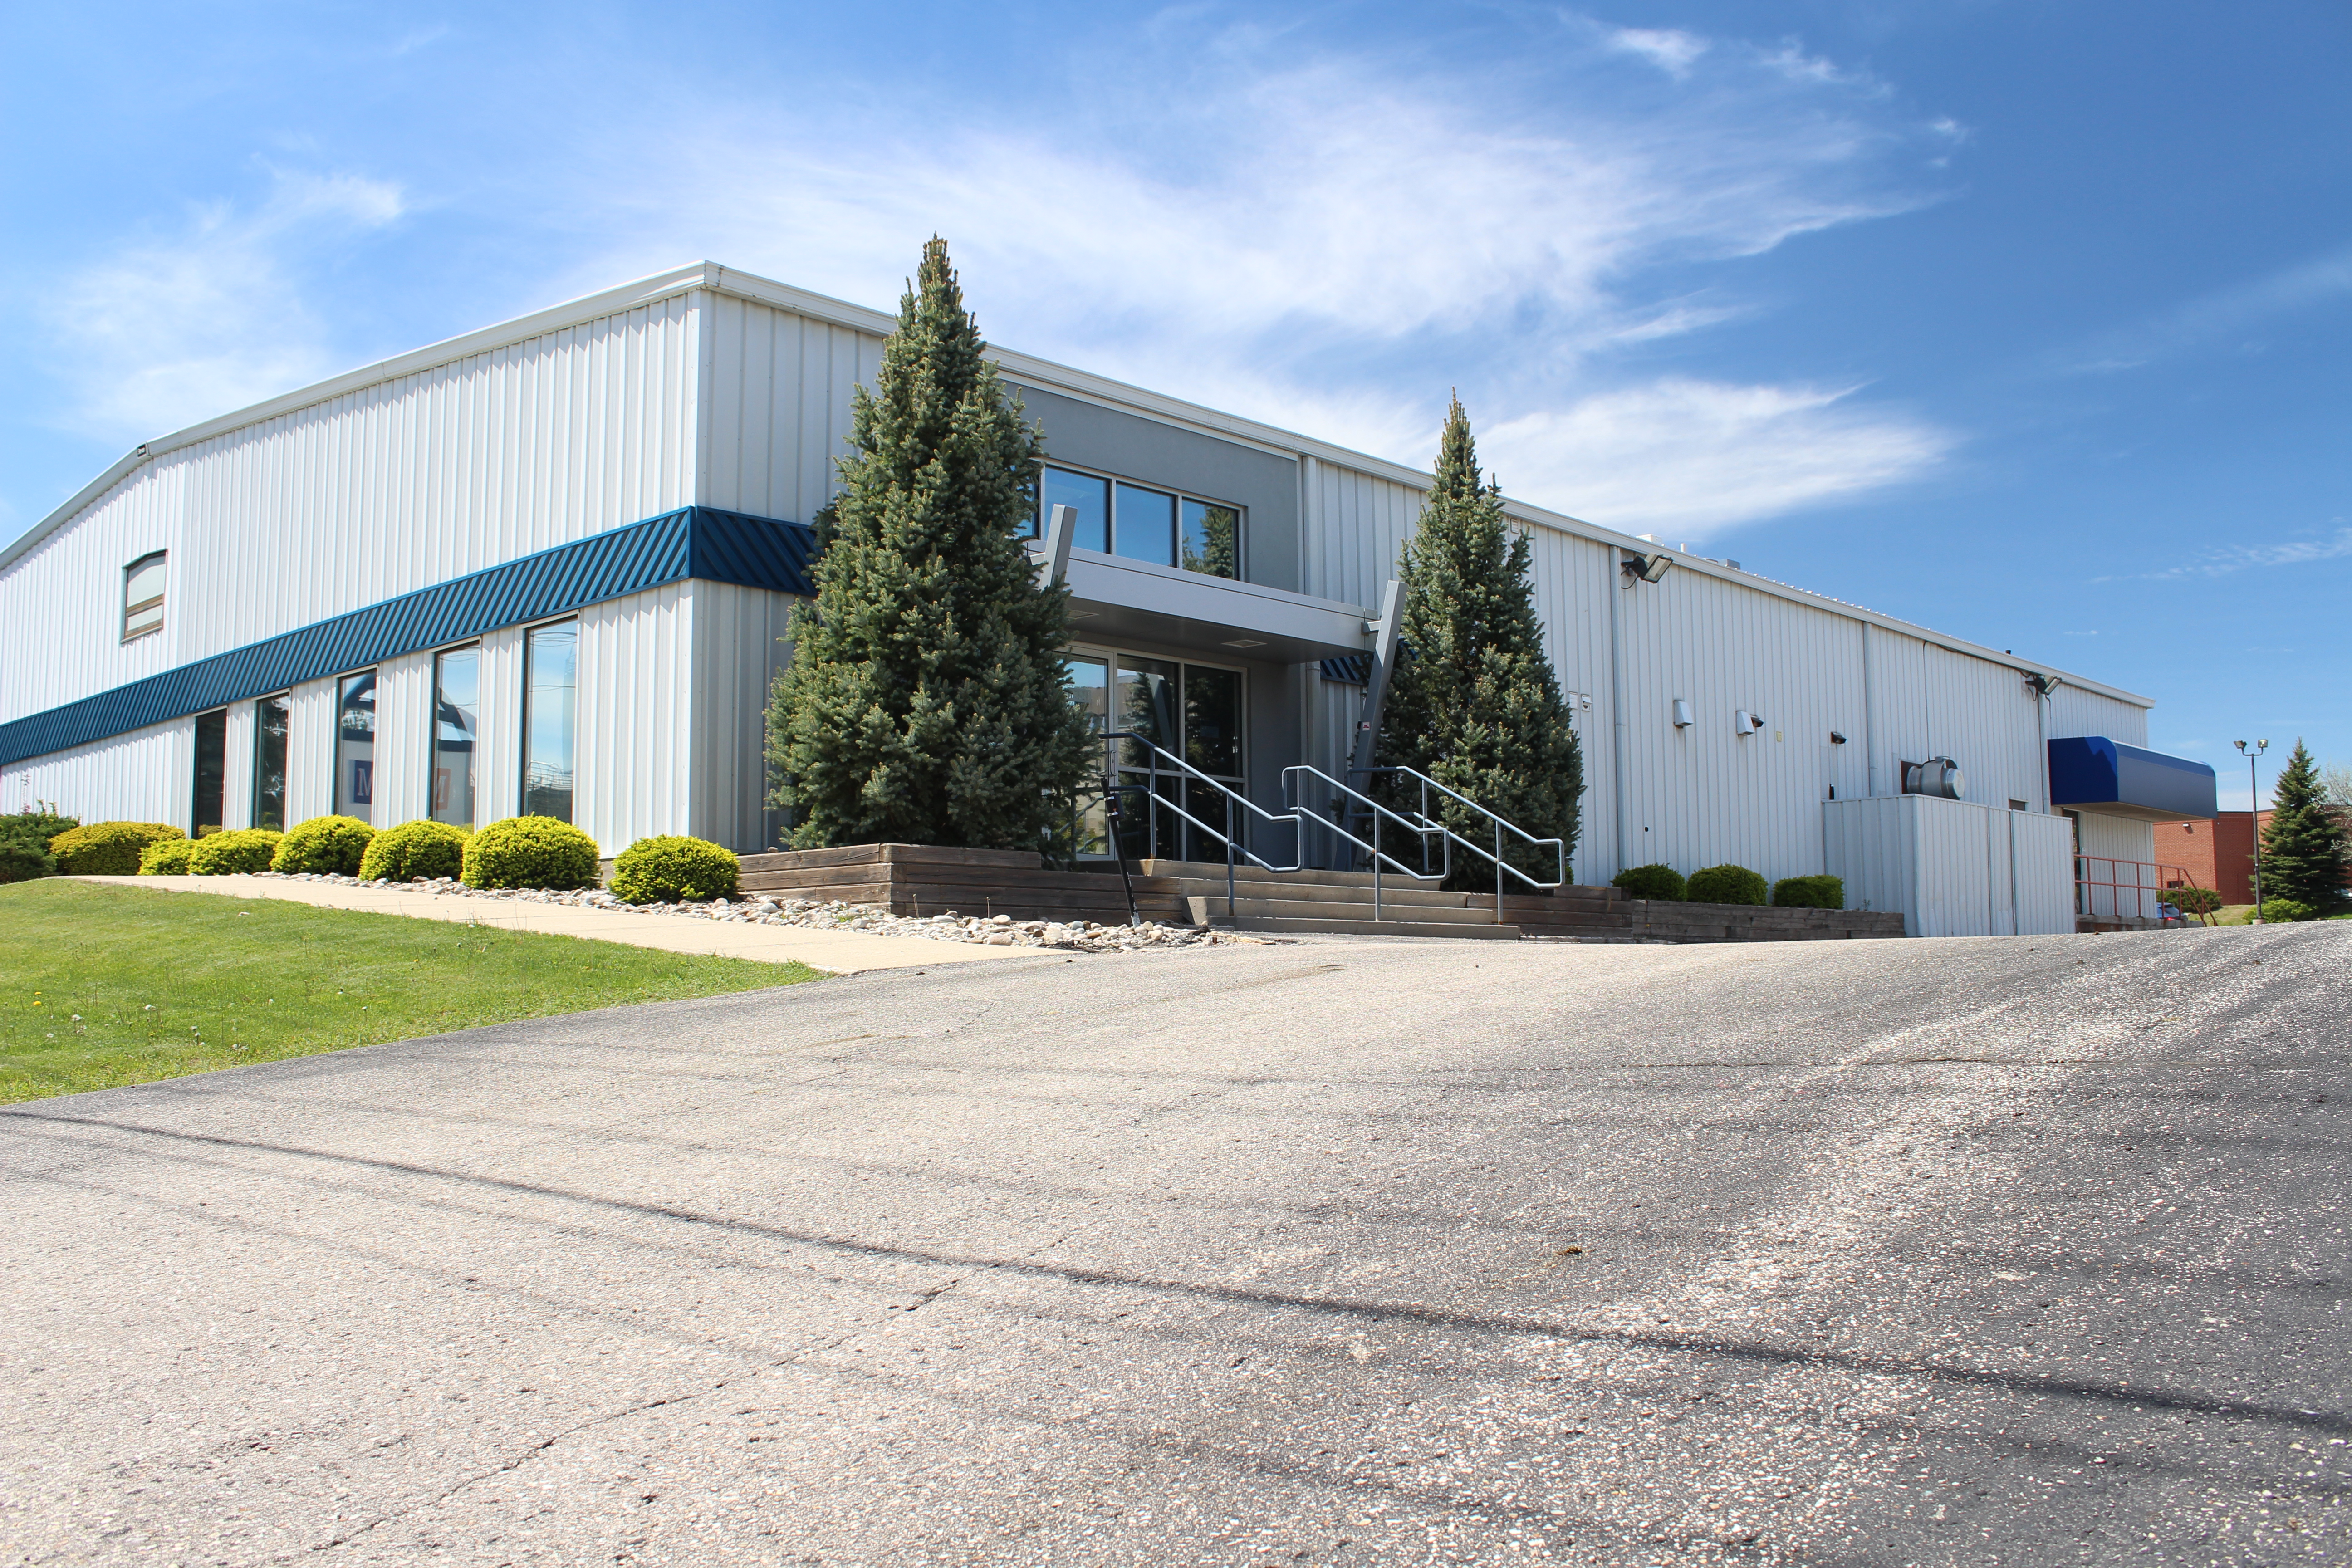 640 Trillium Drive, Kitchener (Huron Business Park) | For Sale or Lease